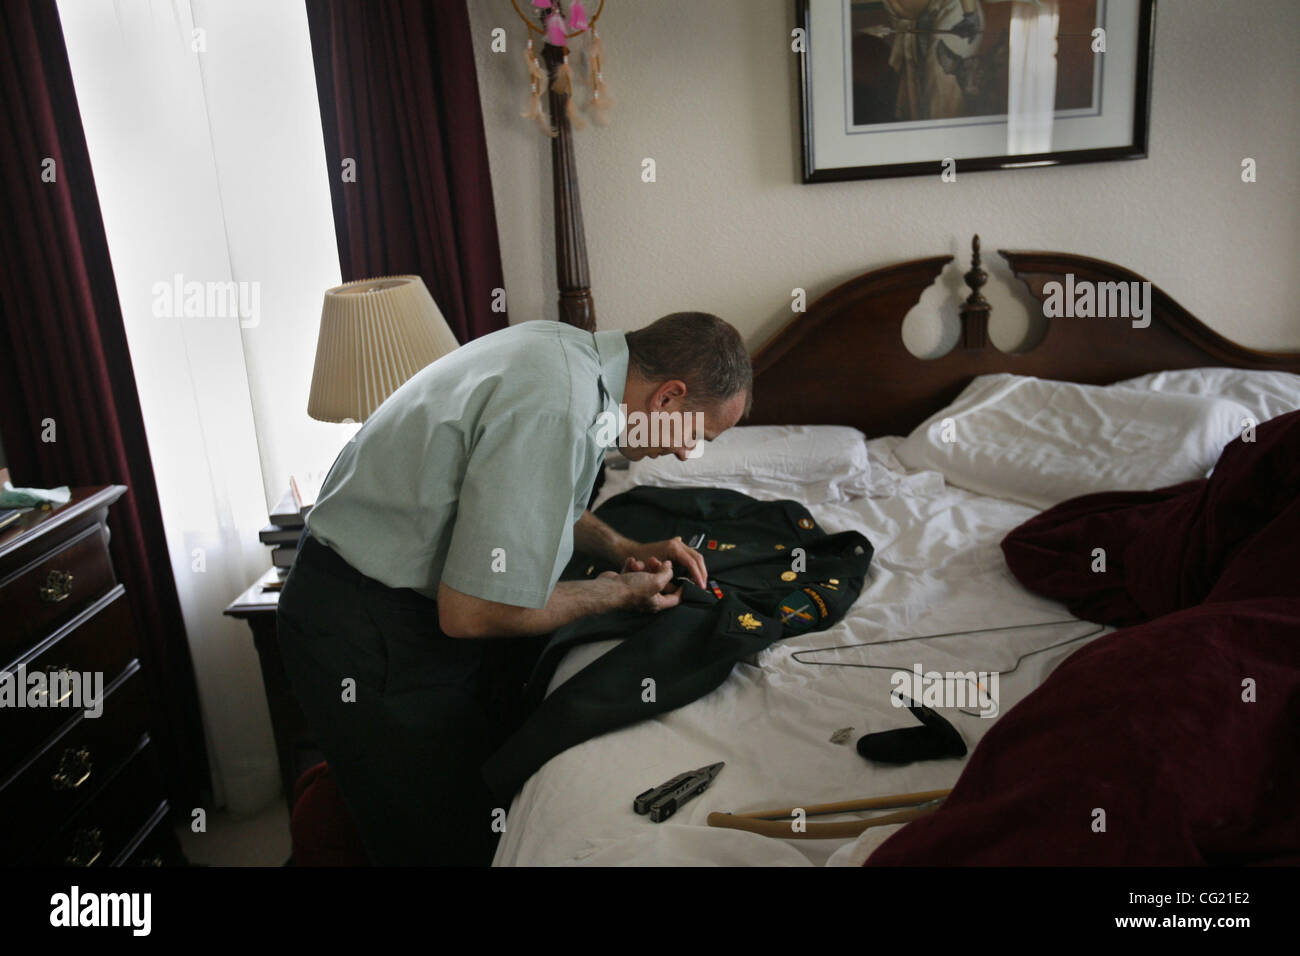 The Perfect Soldier Stockfotos & The Perfect Soldier Bilder - Alamy